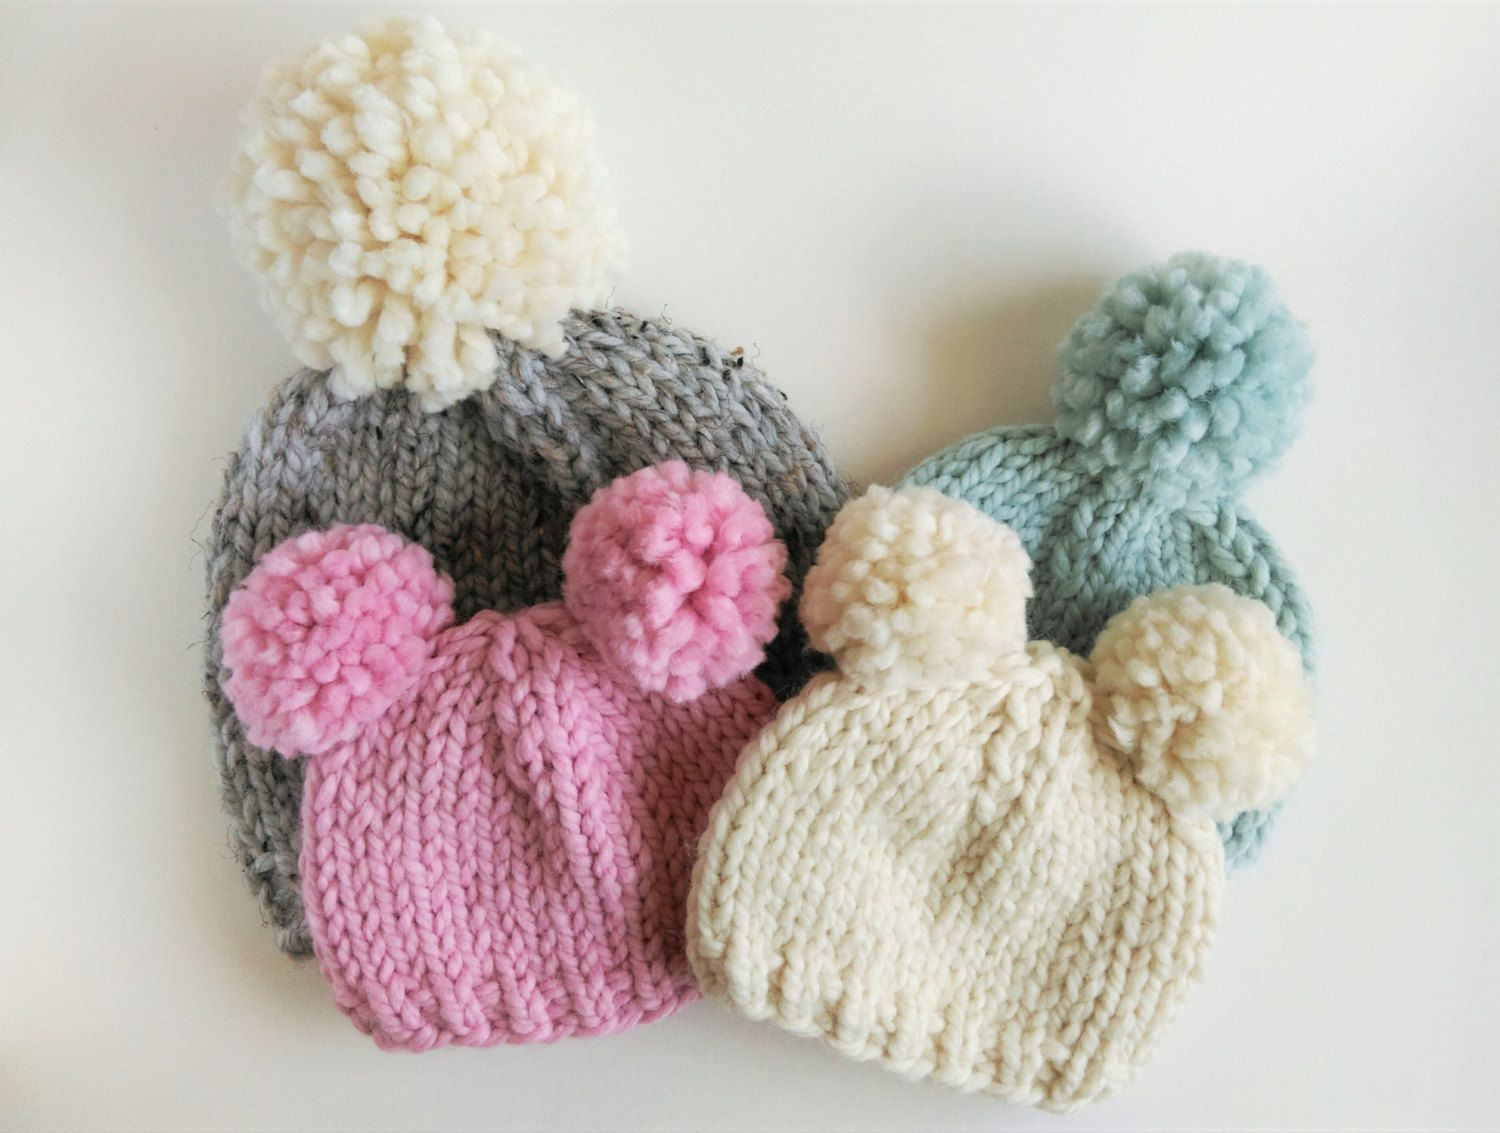 knitting instructions for baby hats